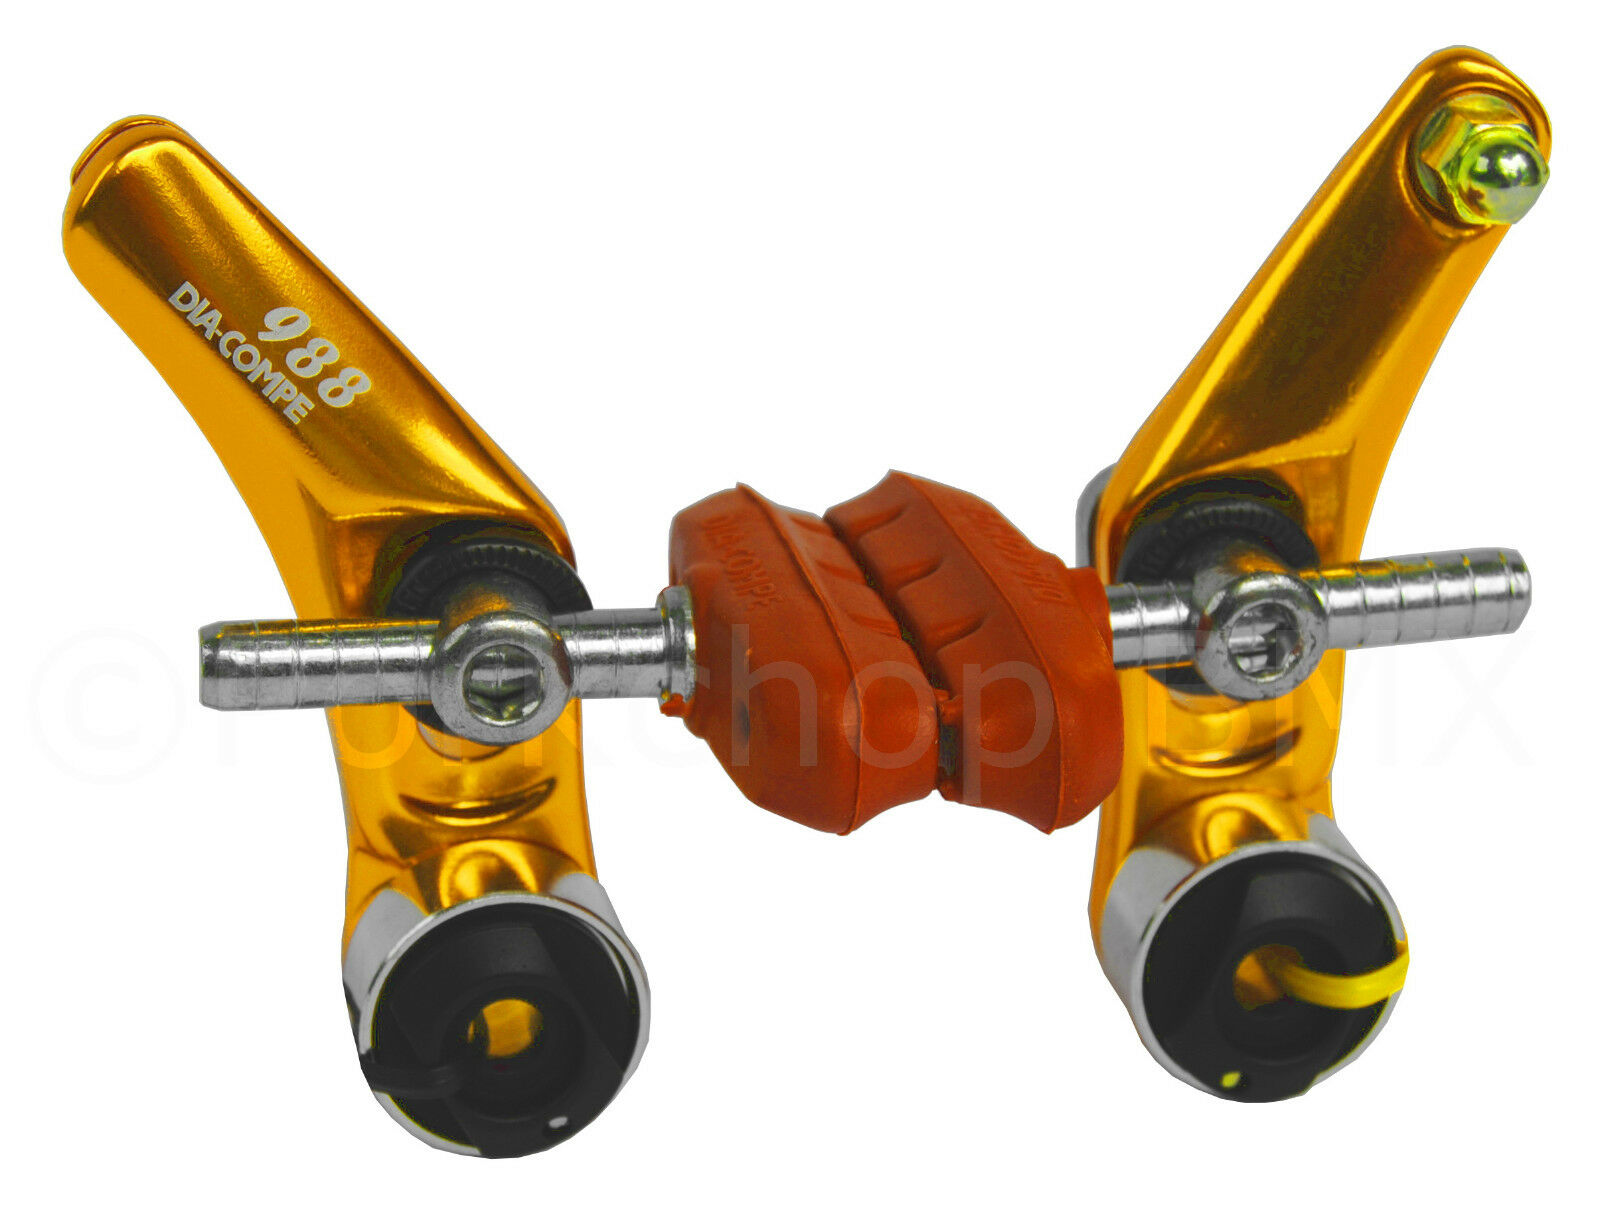 Dia-Compe 988 BMX or MTB Bicycle  Cantilever Brake Caliper - gold ANODIZED  fast delivery and free shipping on all orders